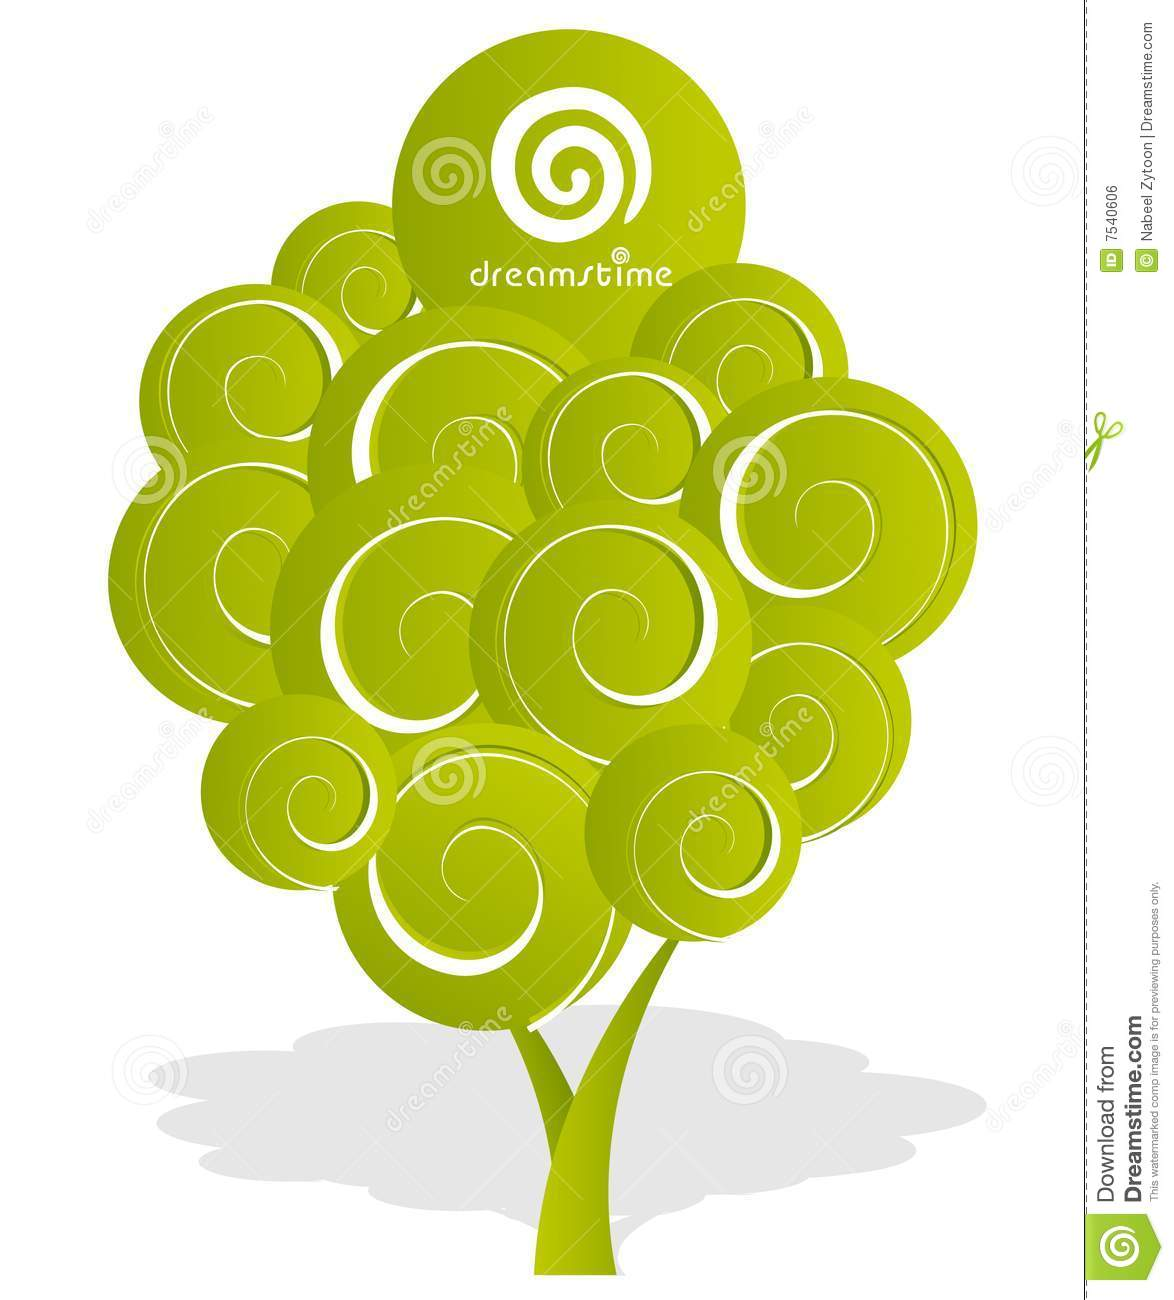 dreamstime tree royalty free stock image image 7540606